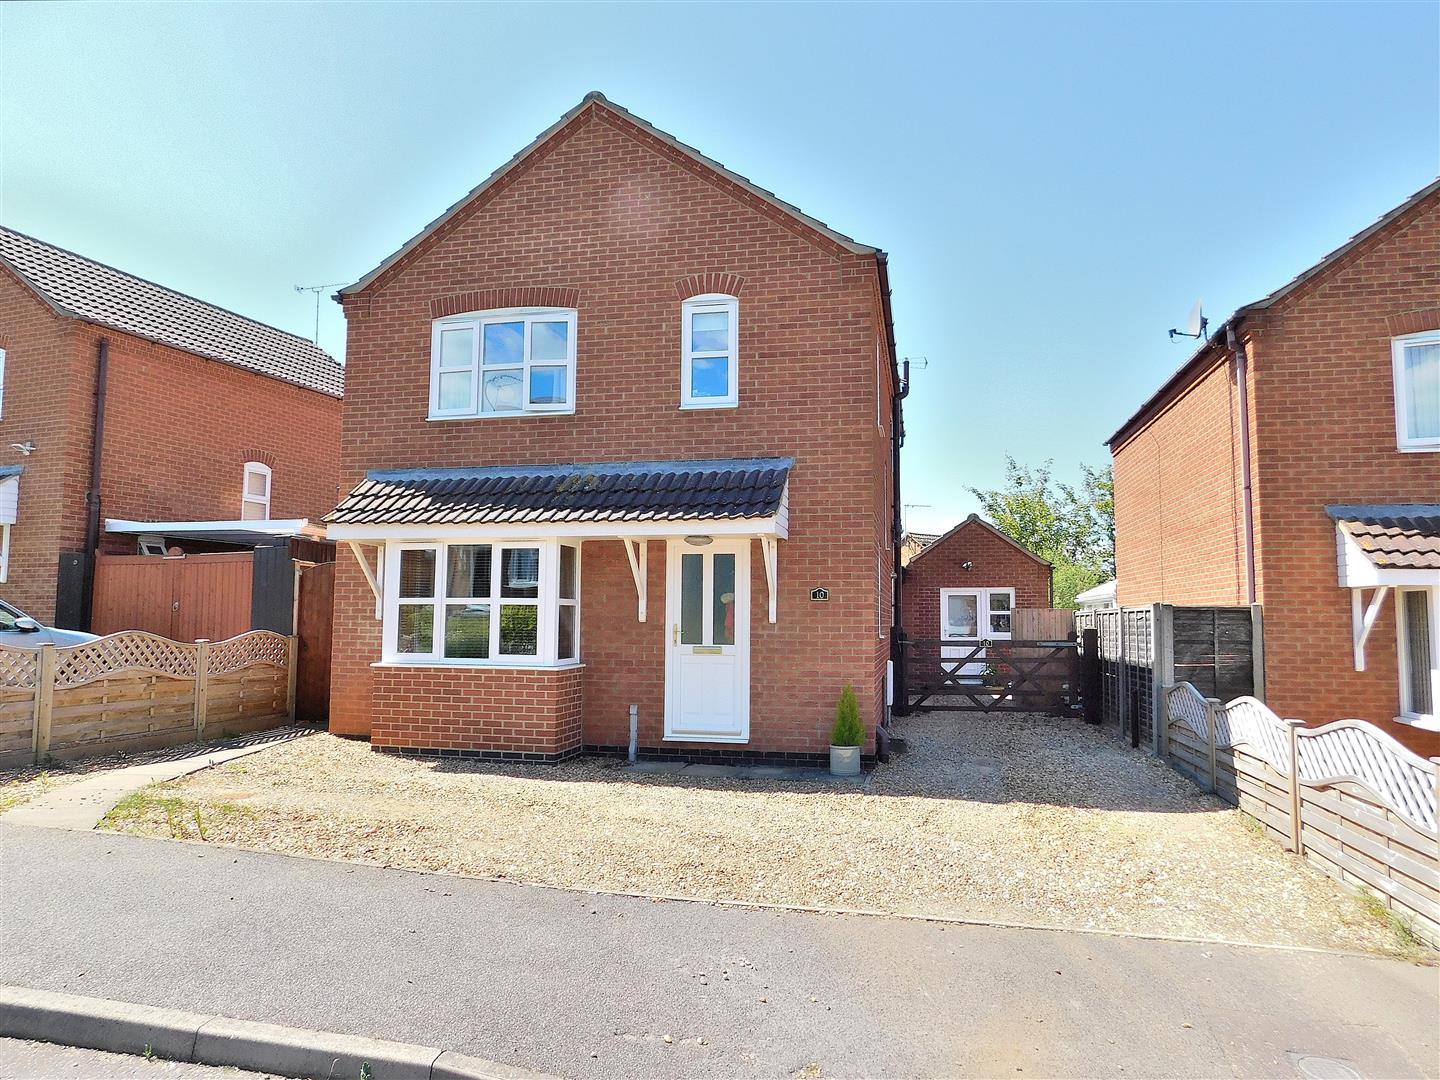 5 bed detached house for sale in Pakenham Drive, King's Lynn  - Property Image 1